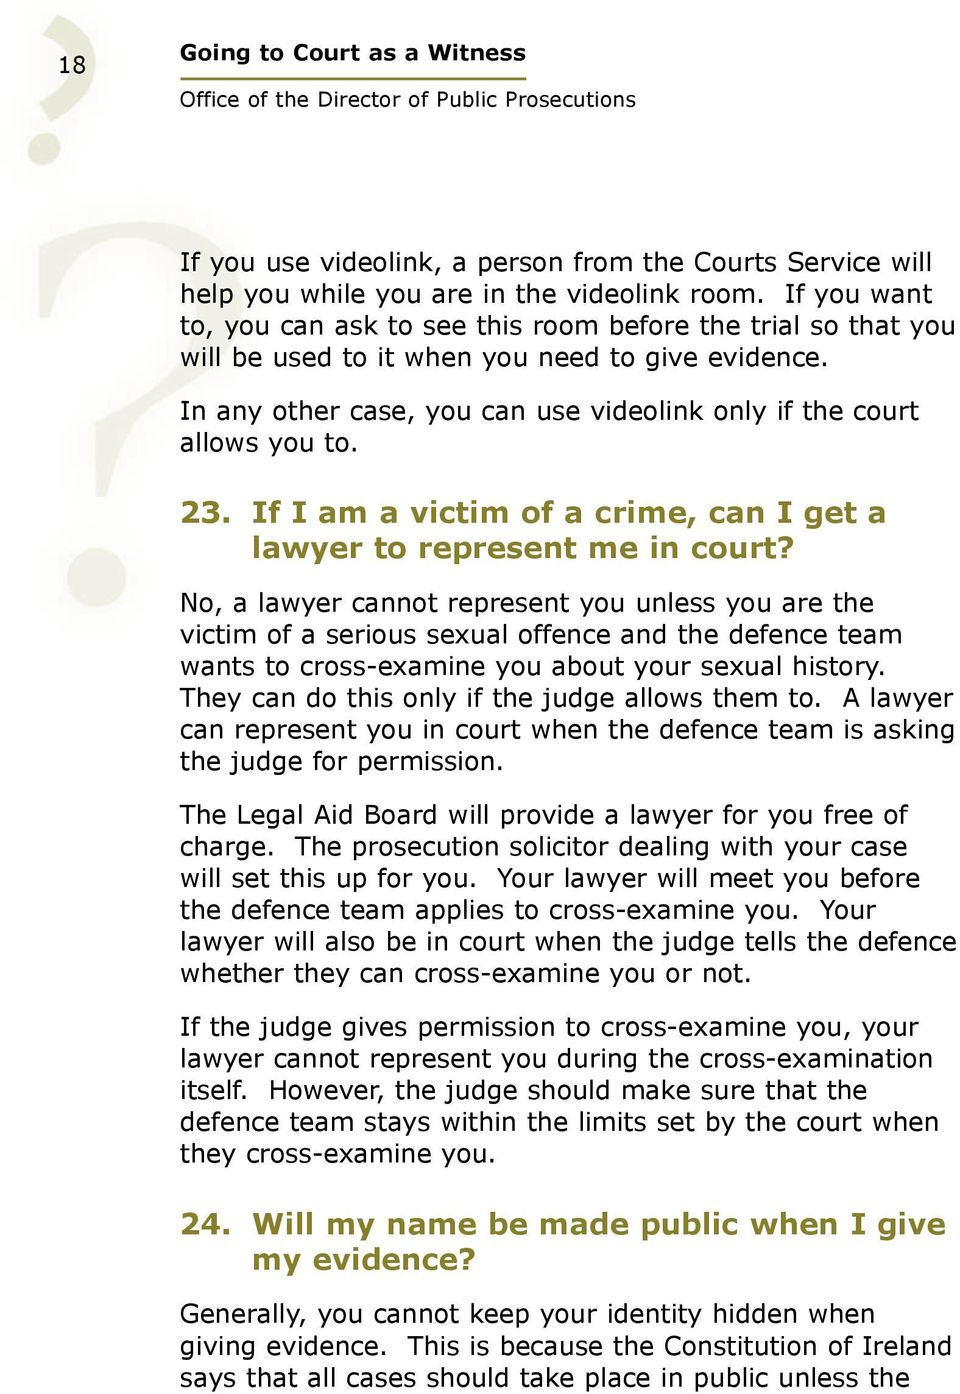 23. If I am a victim of a crime, can I get a lawyer to represent me in court?